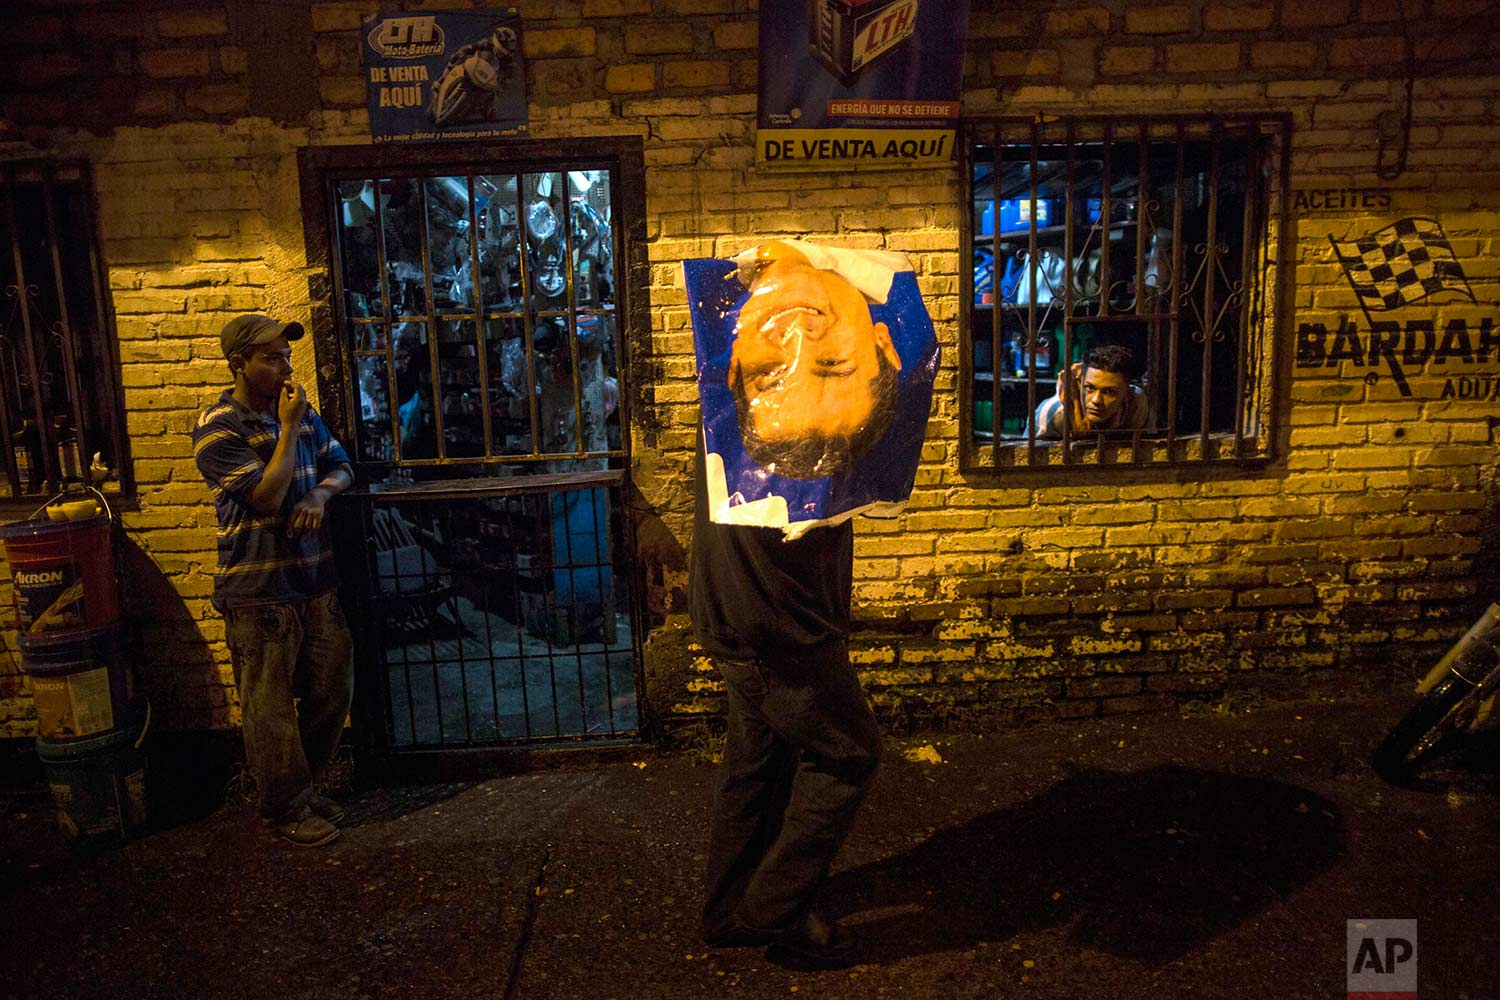 A man protects himself from the rain with a political campaign banner promoting Honduras President and current presidential candidate Juan Orlando Hernandez, in Tegucigalpa, Honduras, Wednesday, Nov. 22, 2017. (AP Photo/Rodrigo Abd)